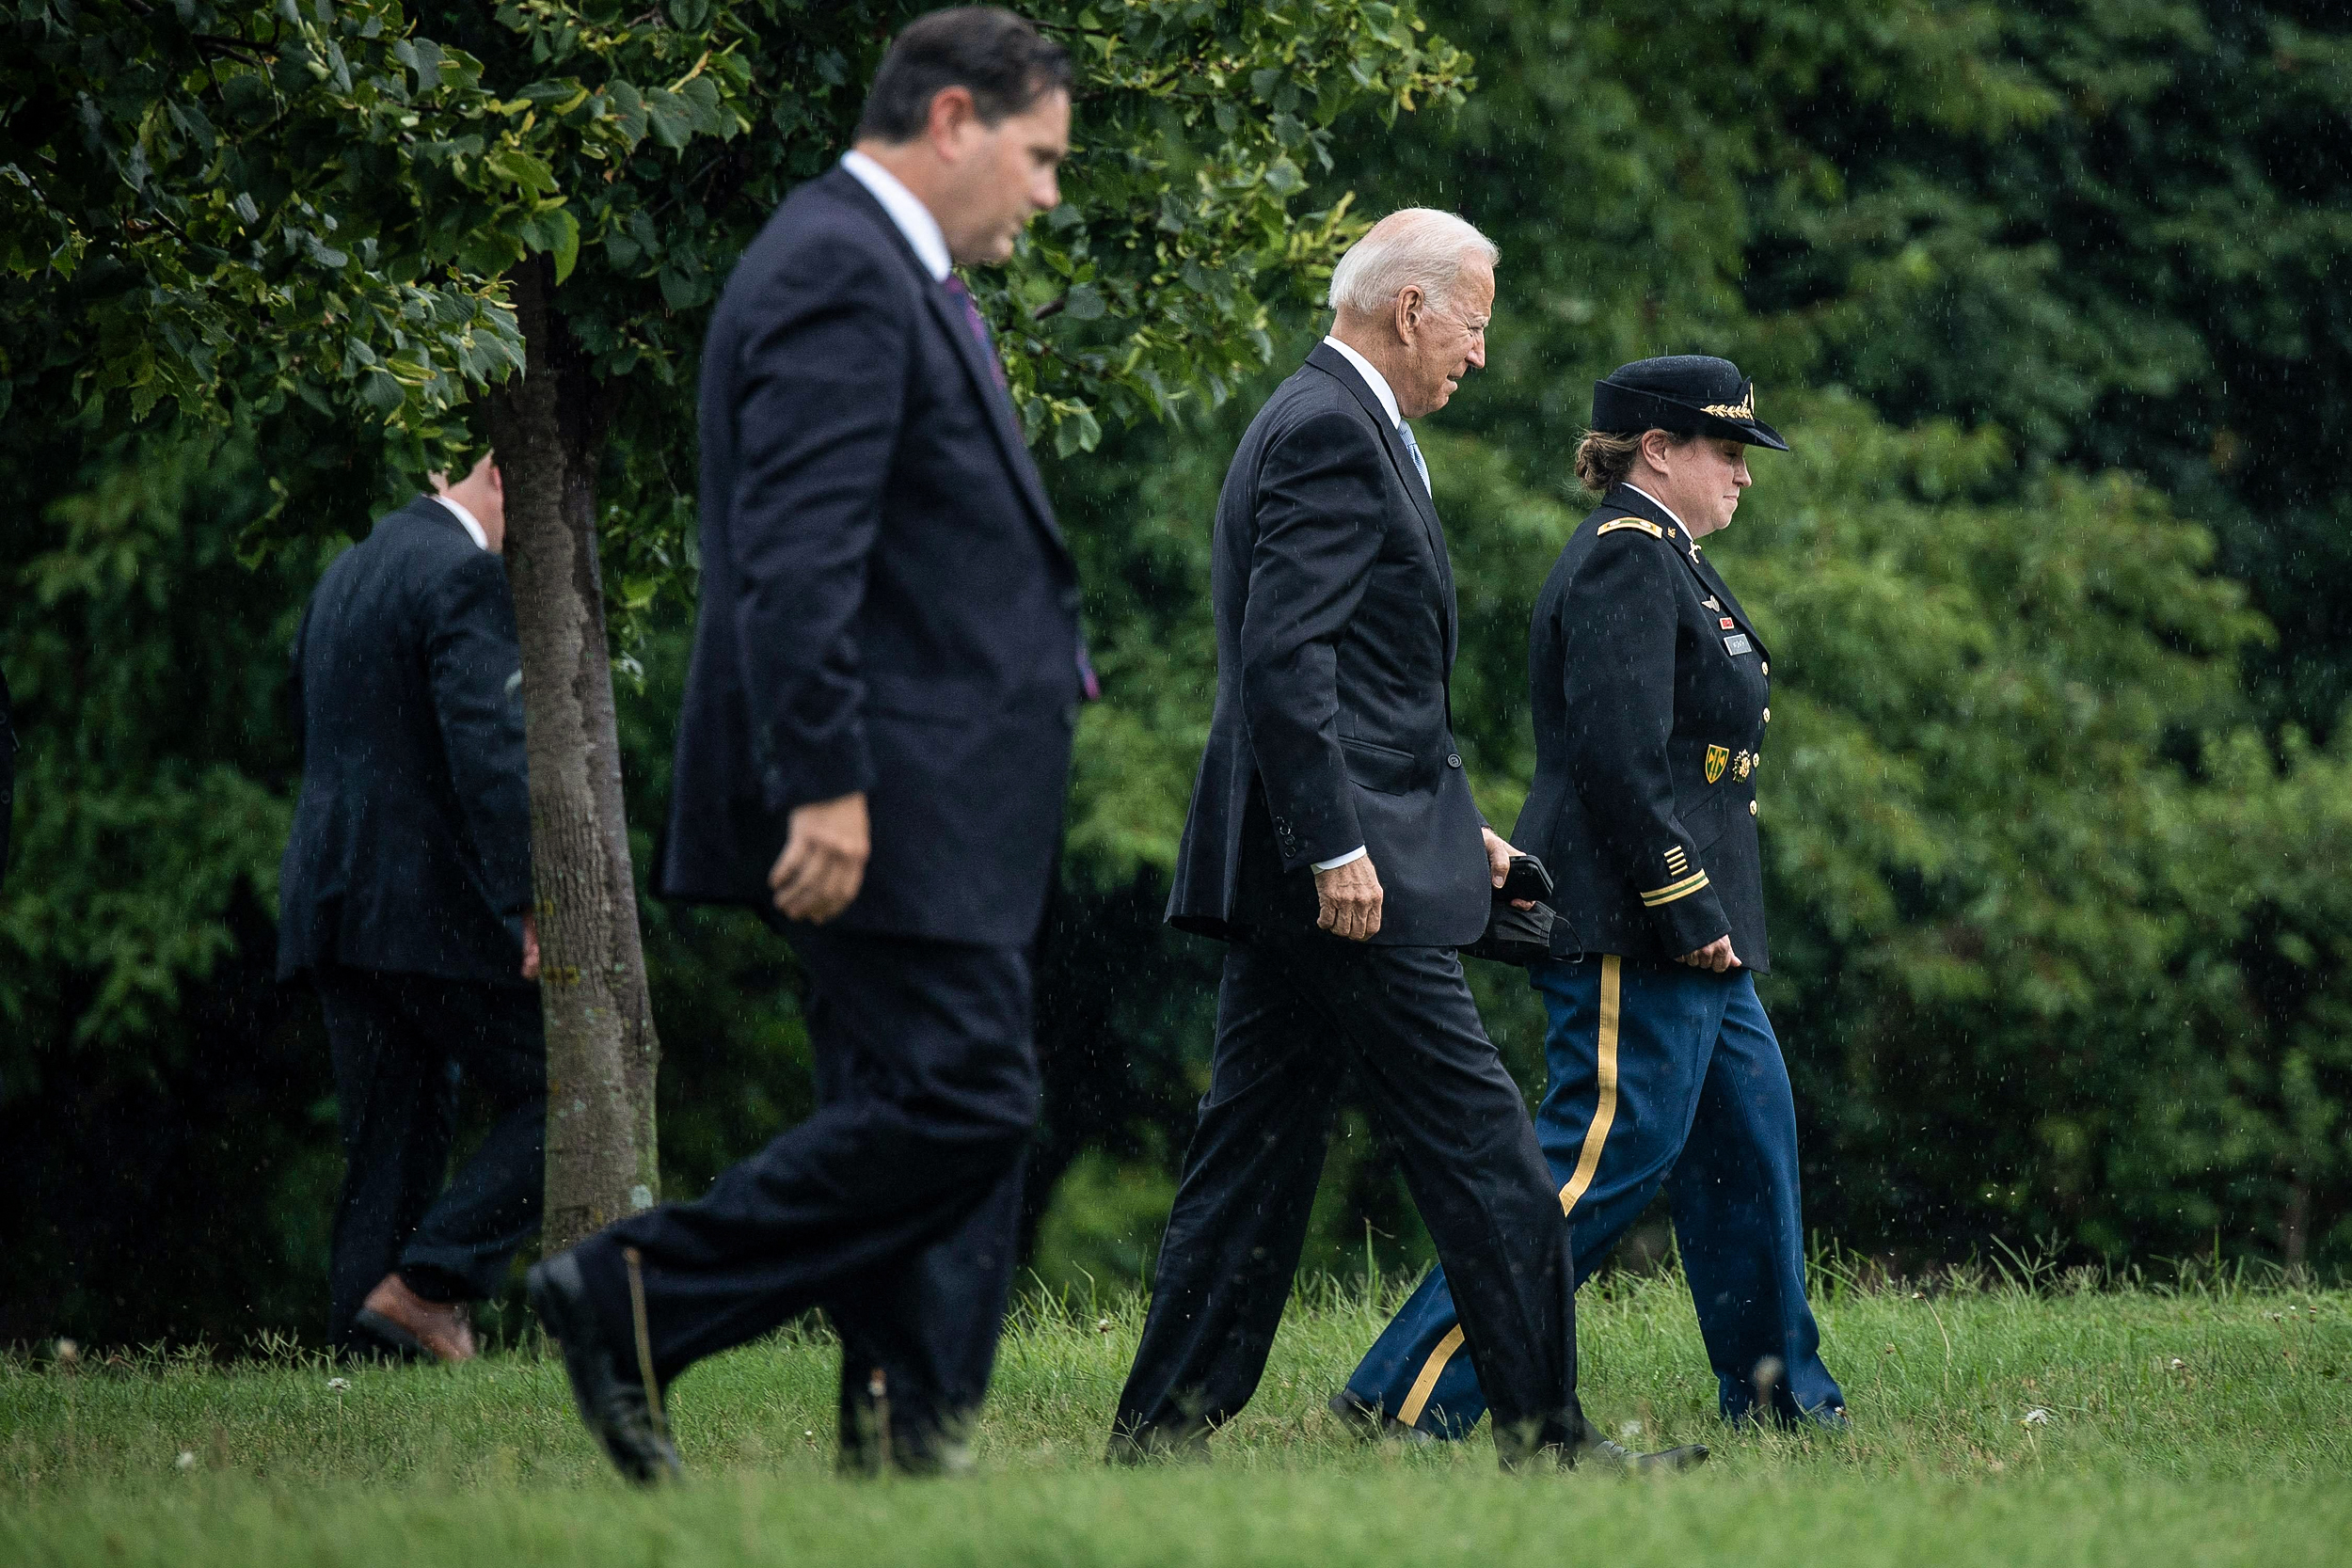 Biden, Johnson discuss military withdrawal in Afghanistan